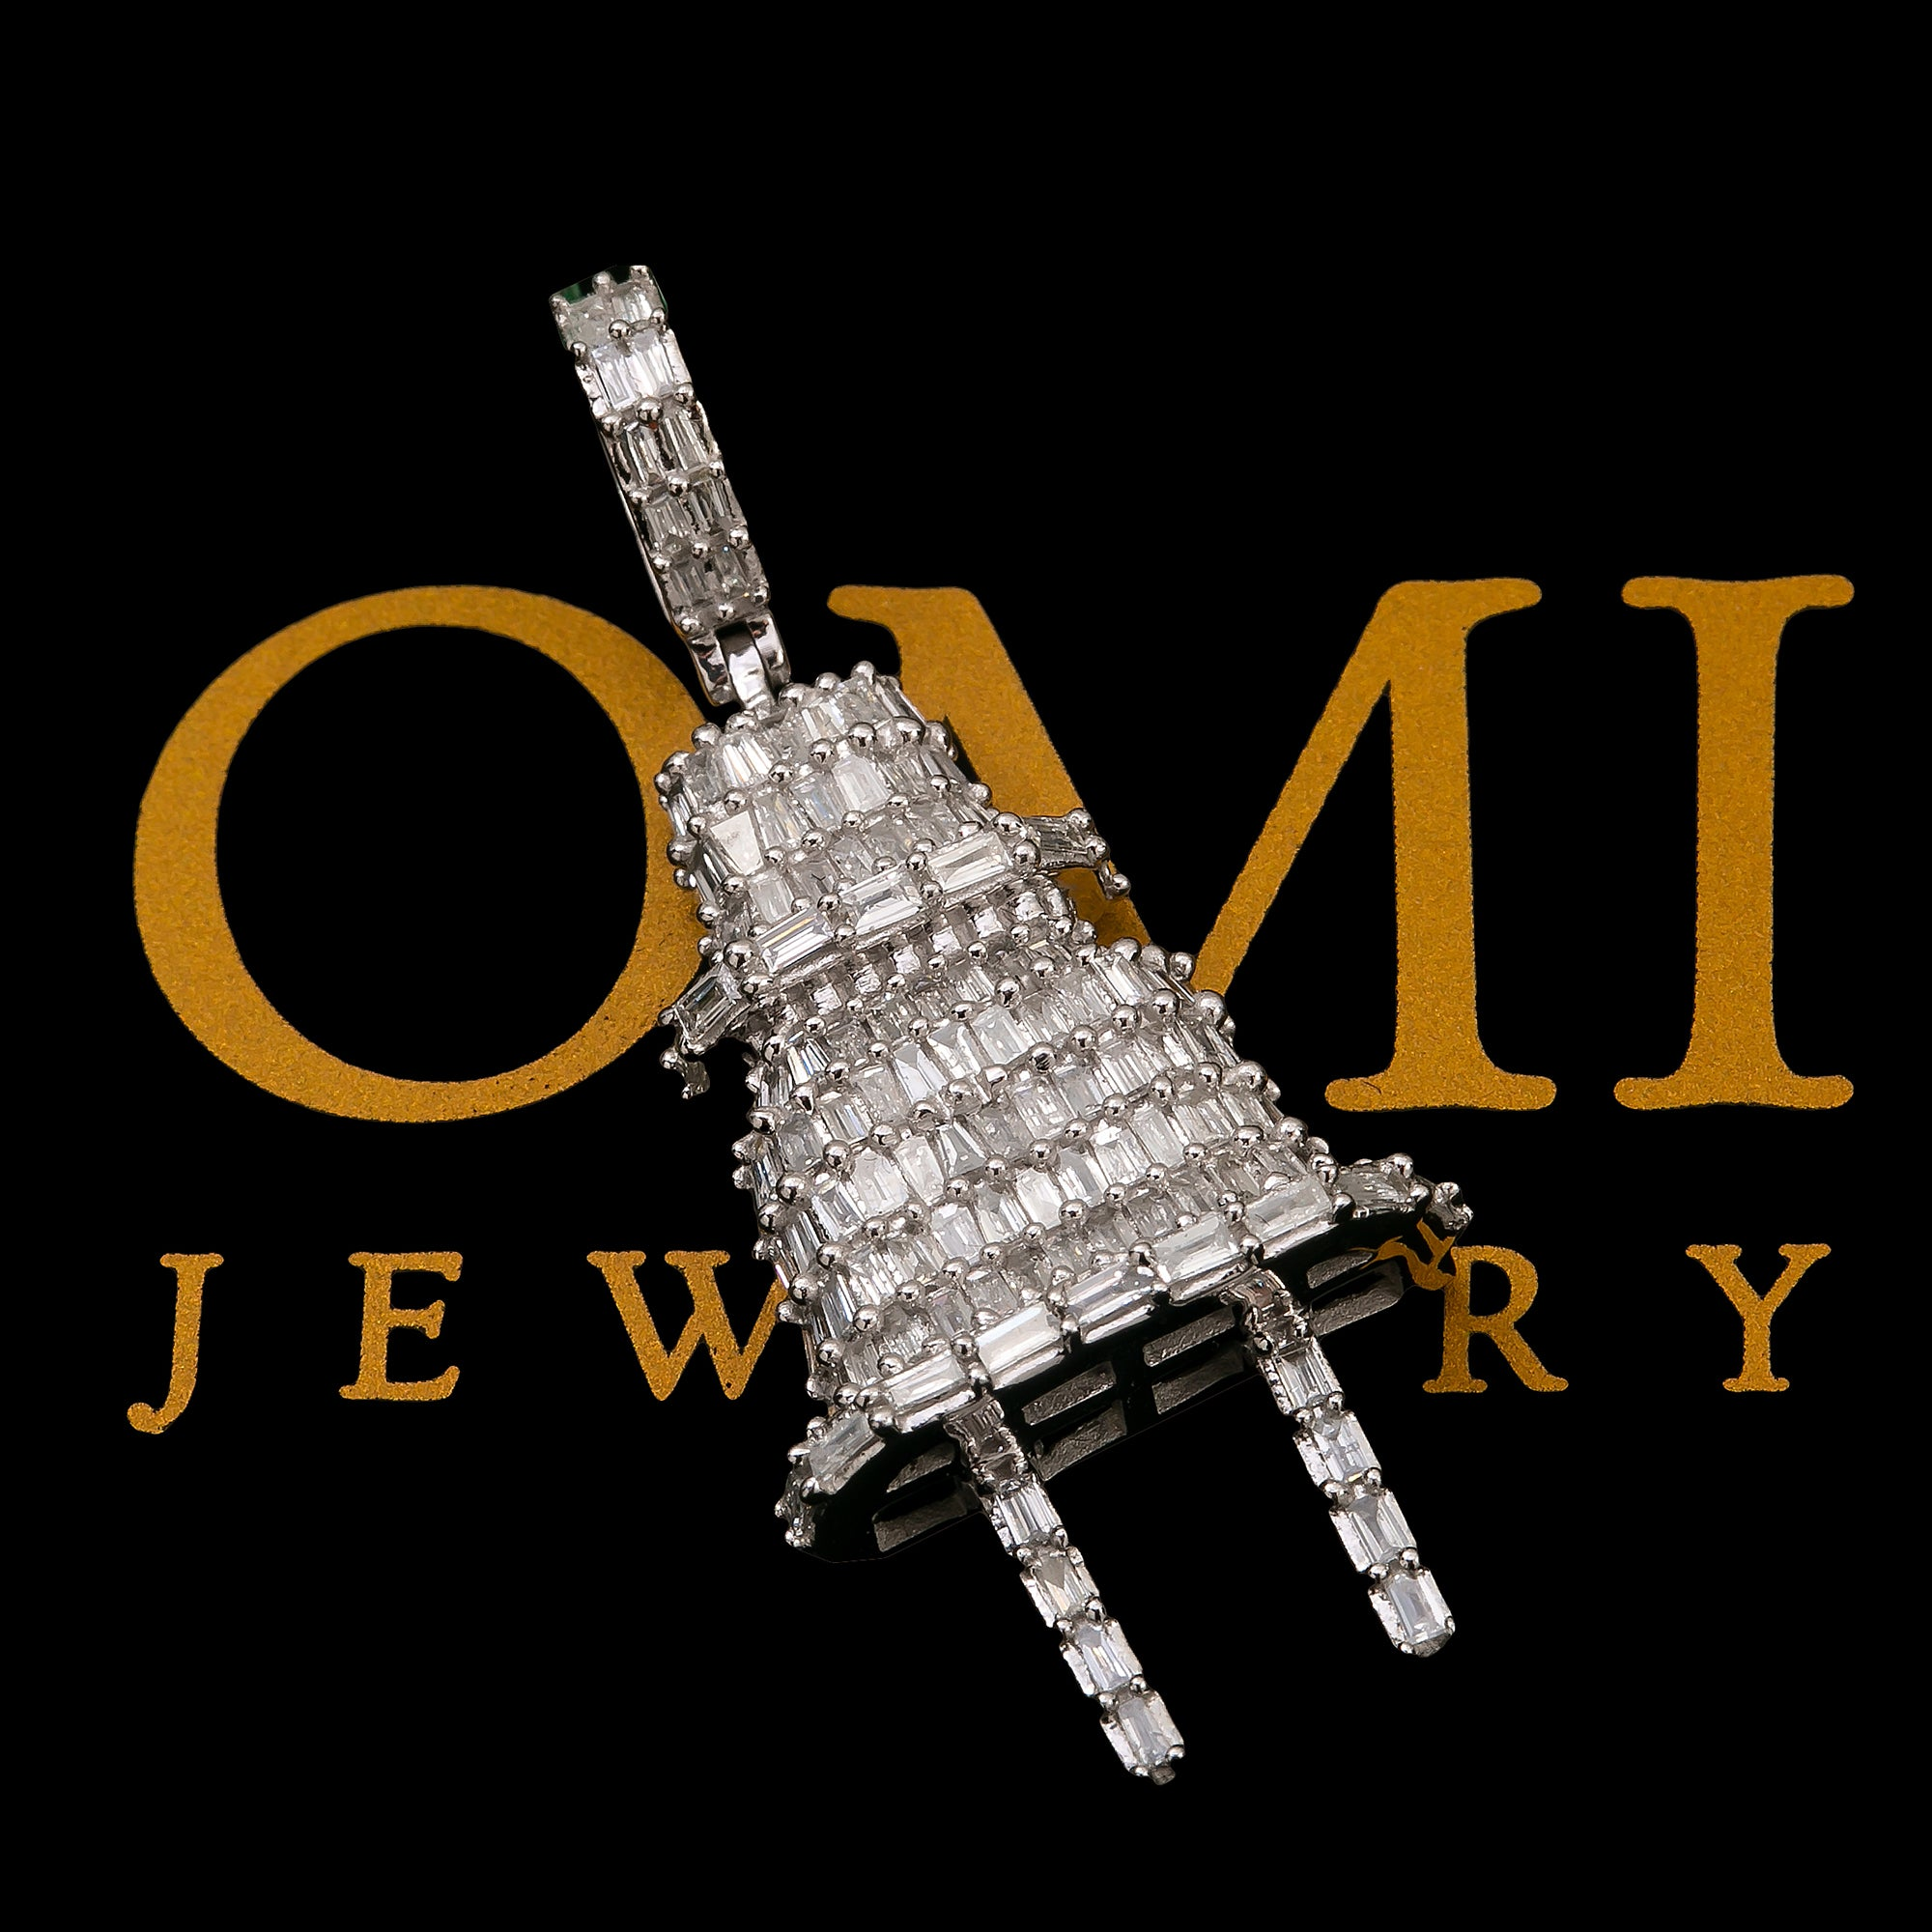 Panerai Luminor Submersible 1950 3 Days Automatic PAM00389 47MM Black Dial With Rubber Bracelet